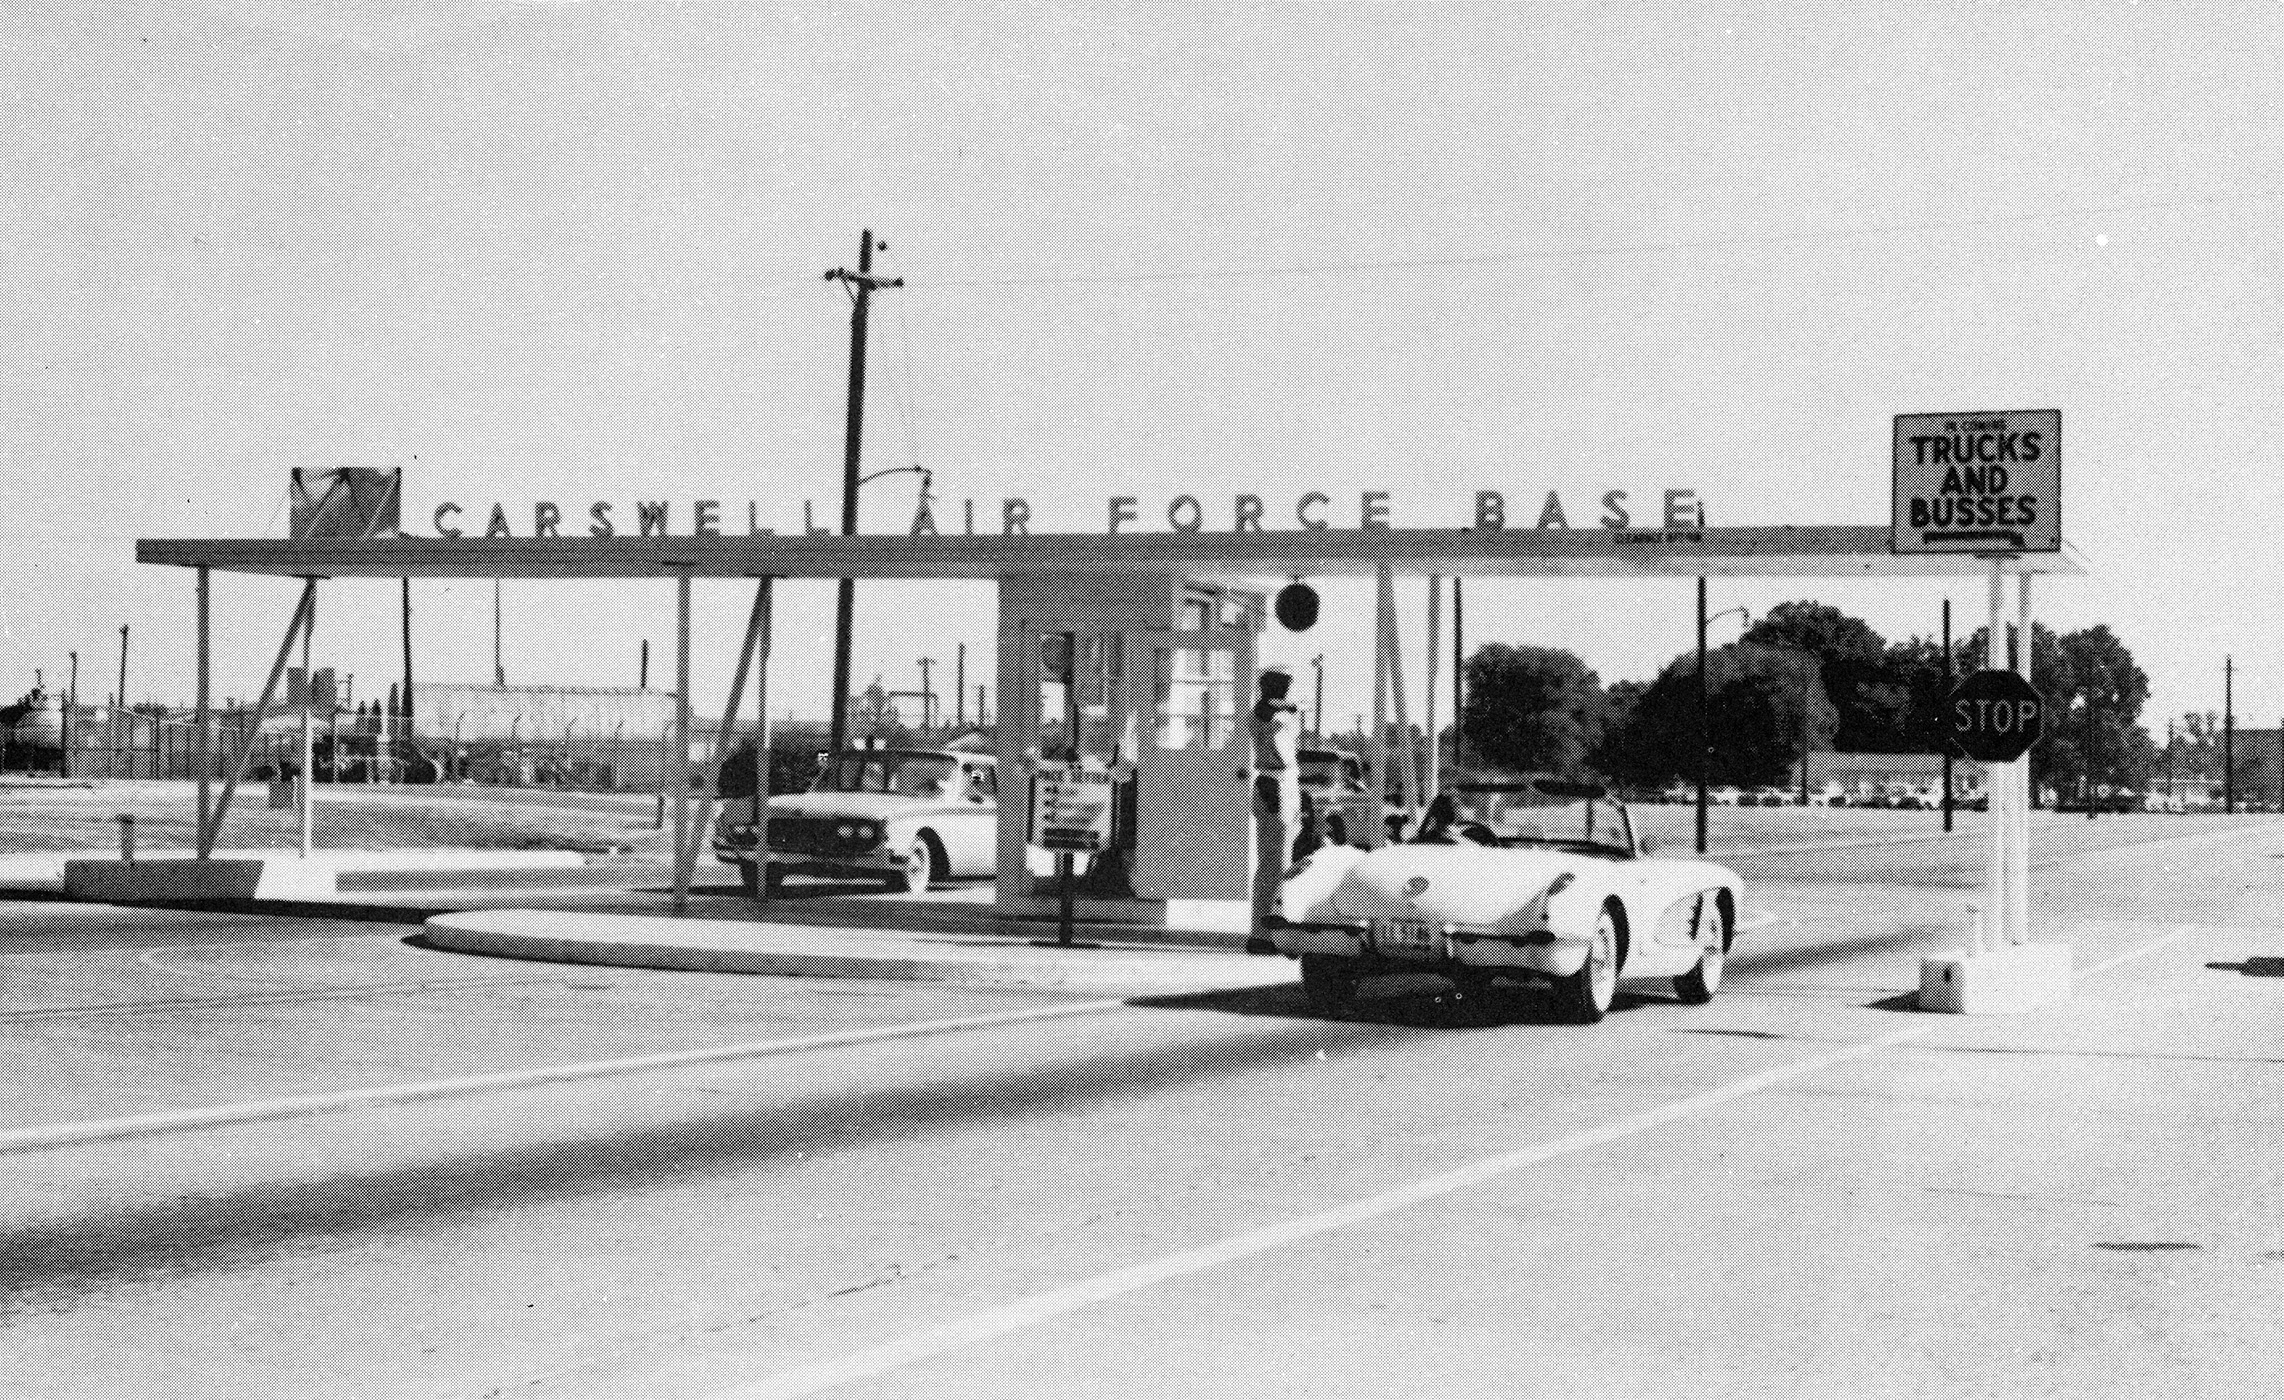 Carswell Air Force Base main entrance 1960s